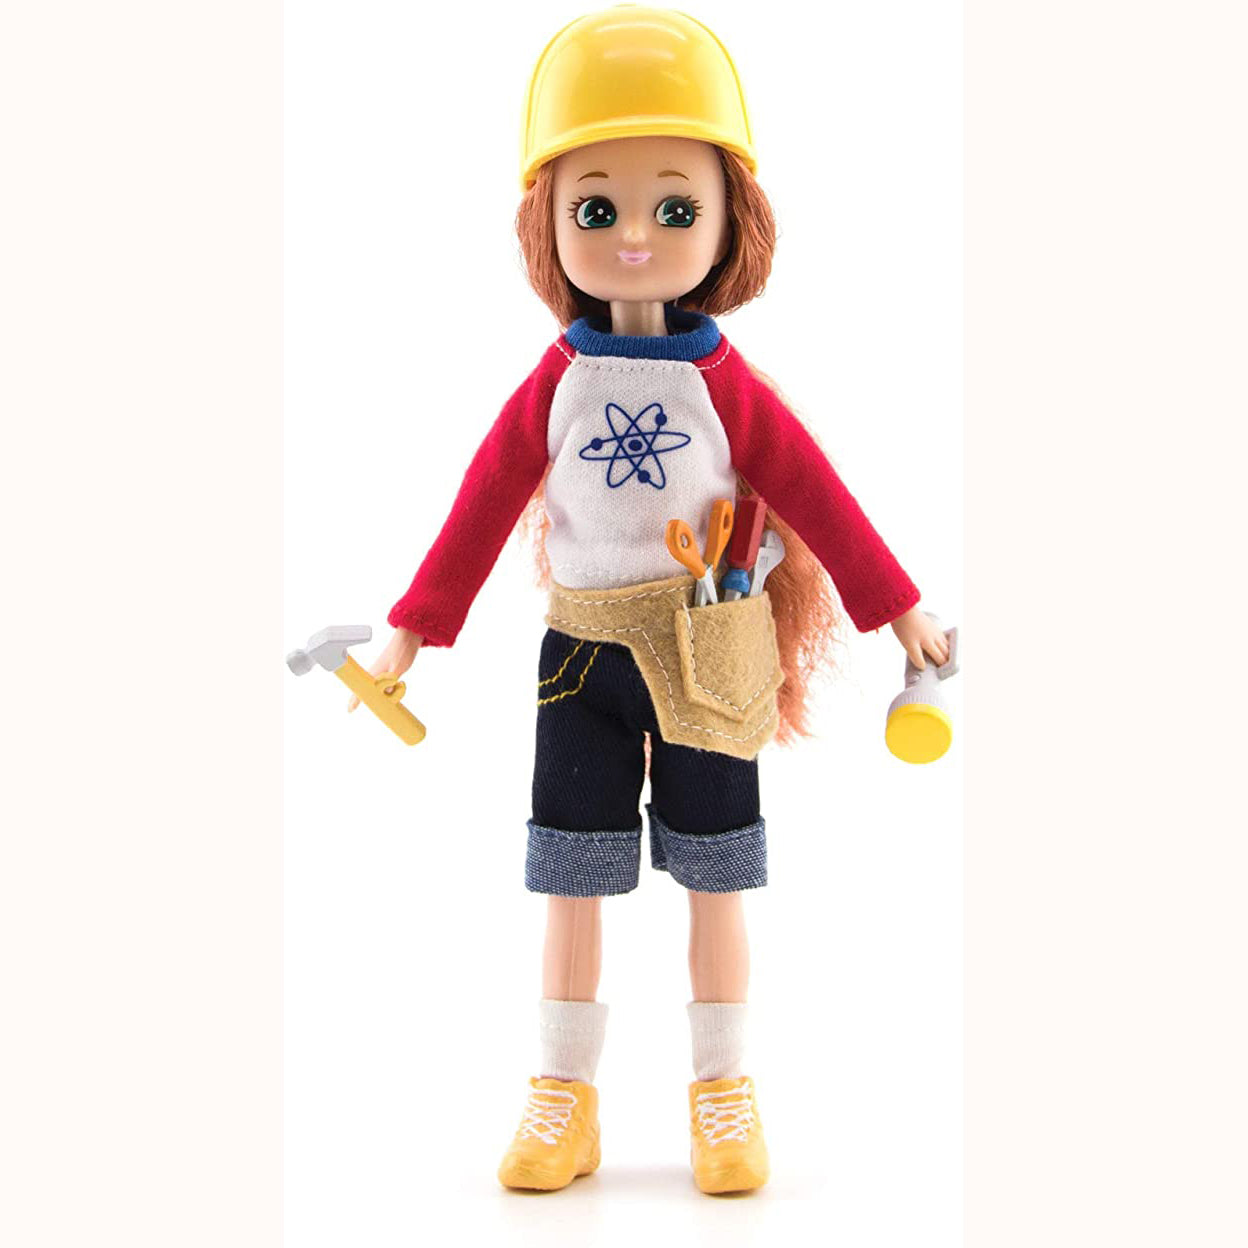 Young Inventor Lottie Doll, unboxed with tools and hat